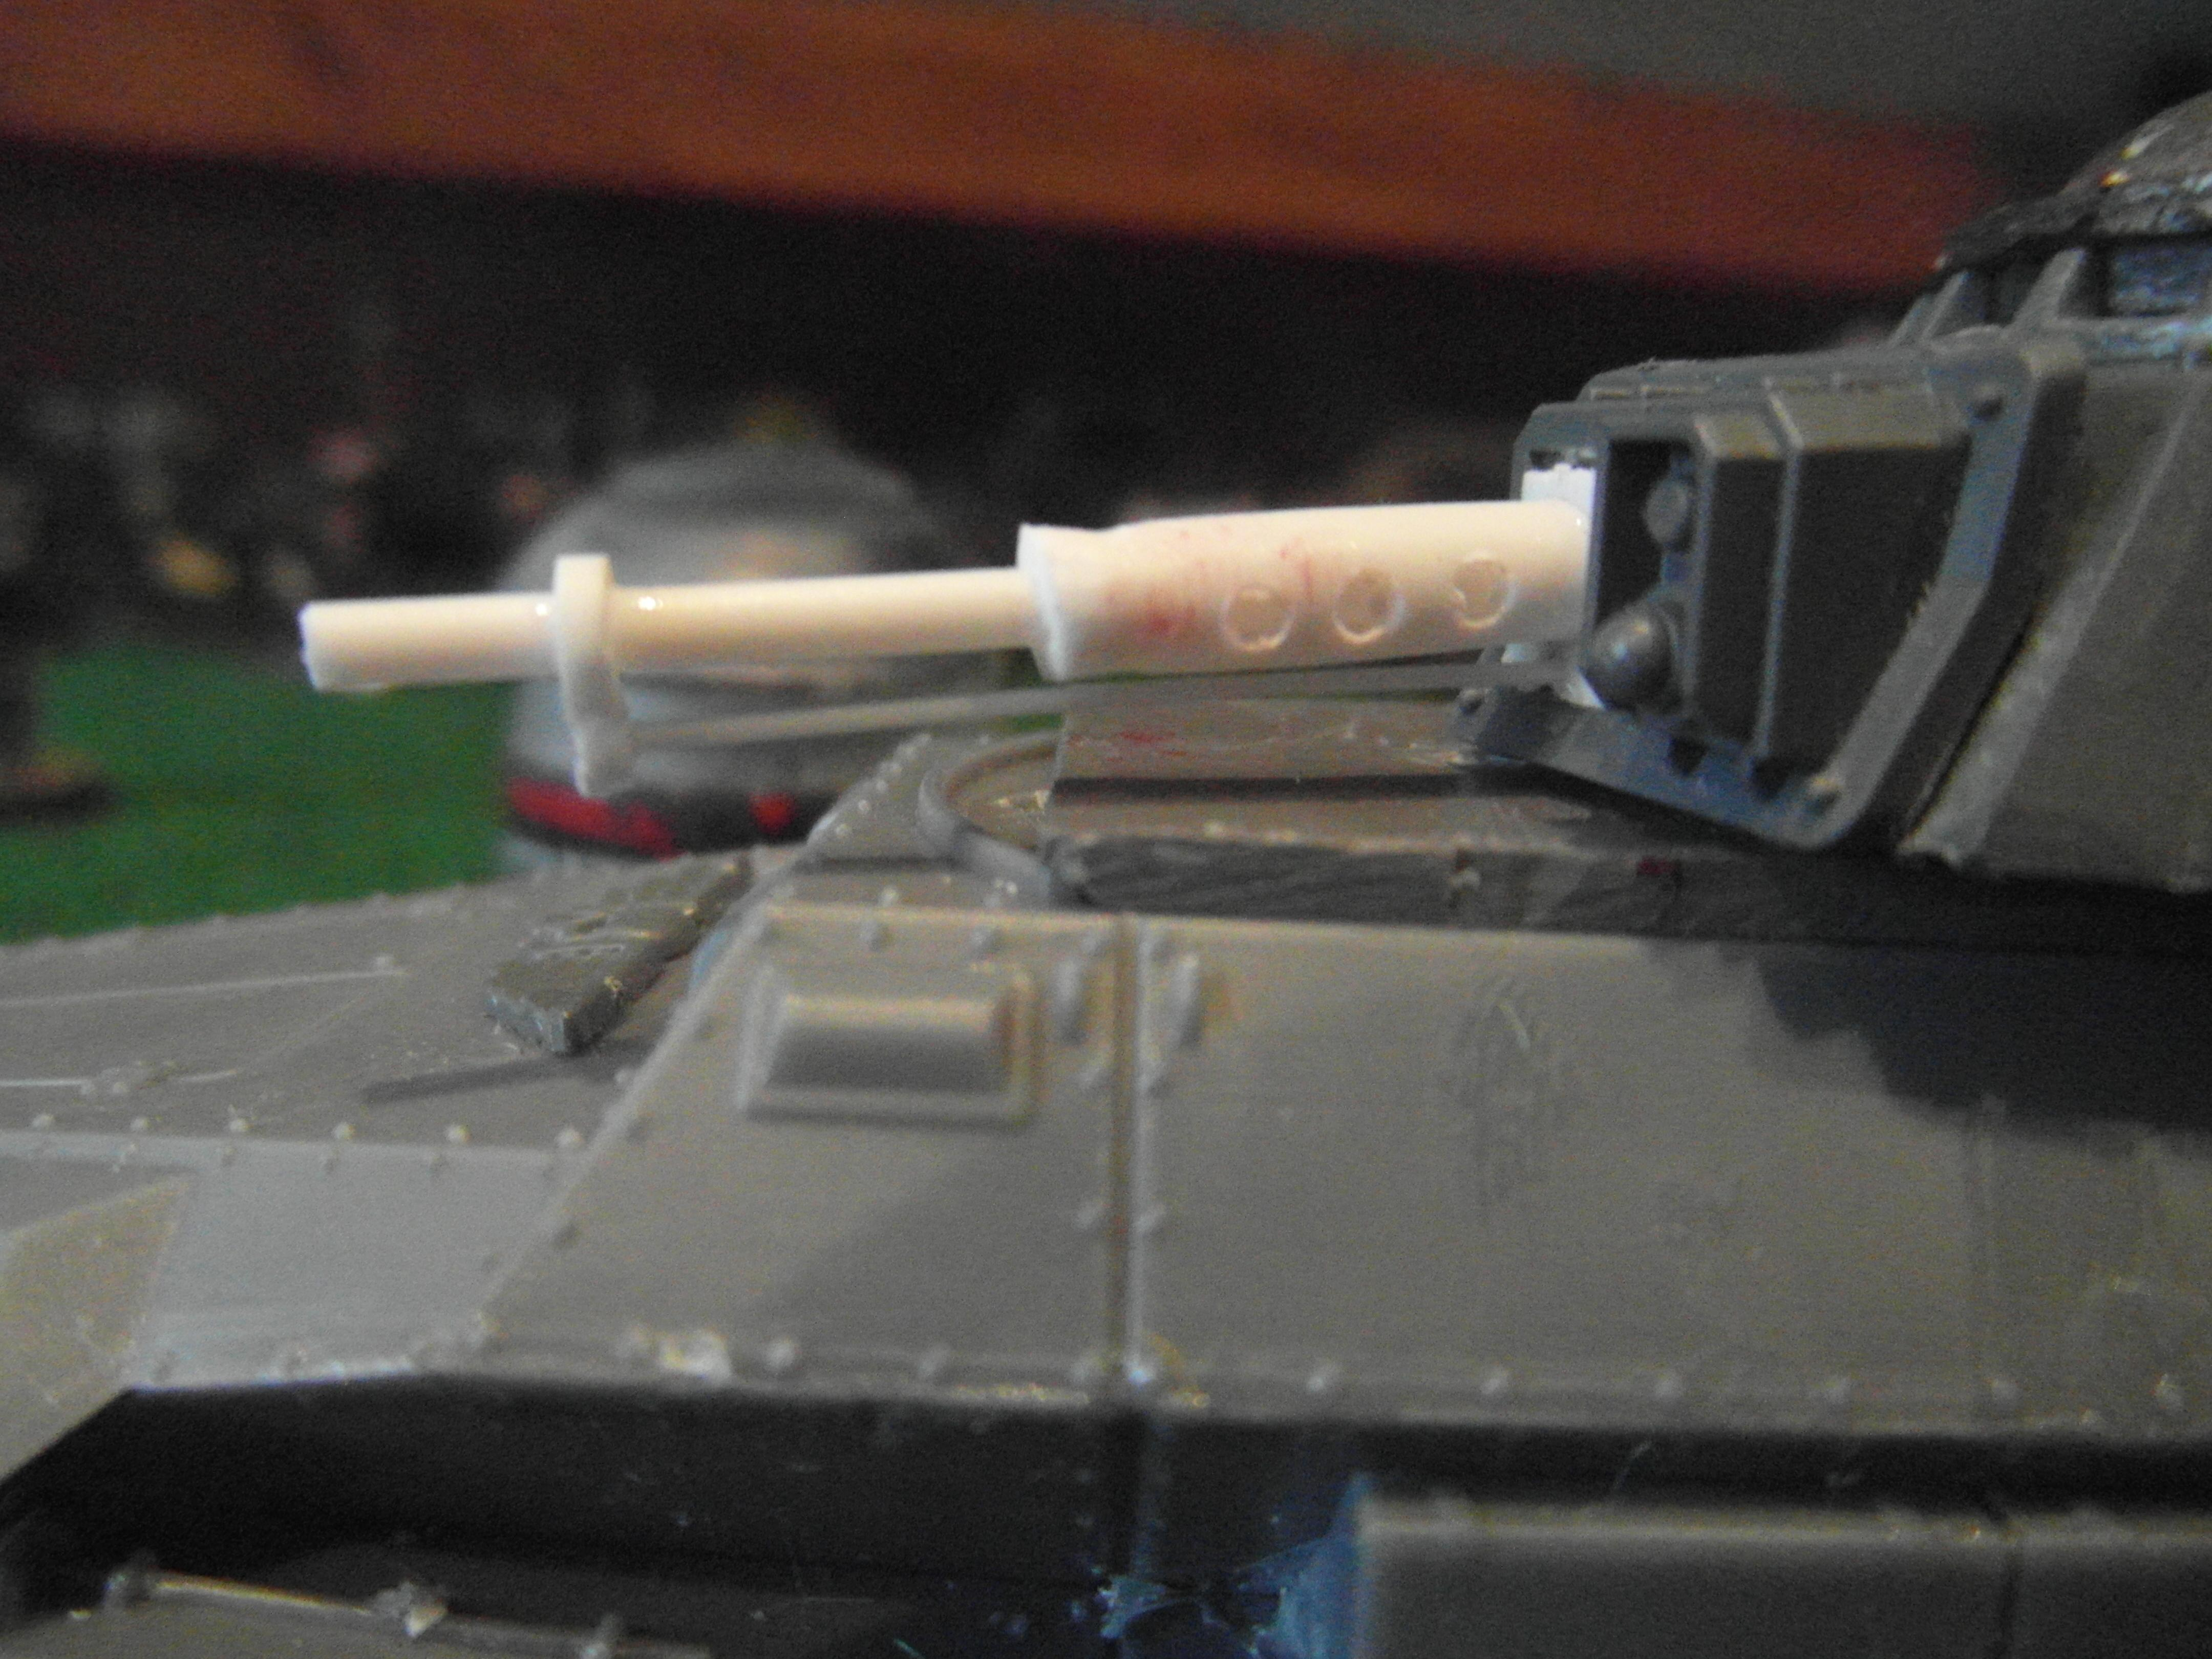 I have used plasticard rods to assemble an alternate heavy stubber